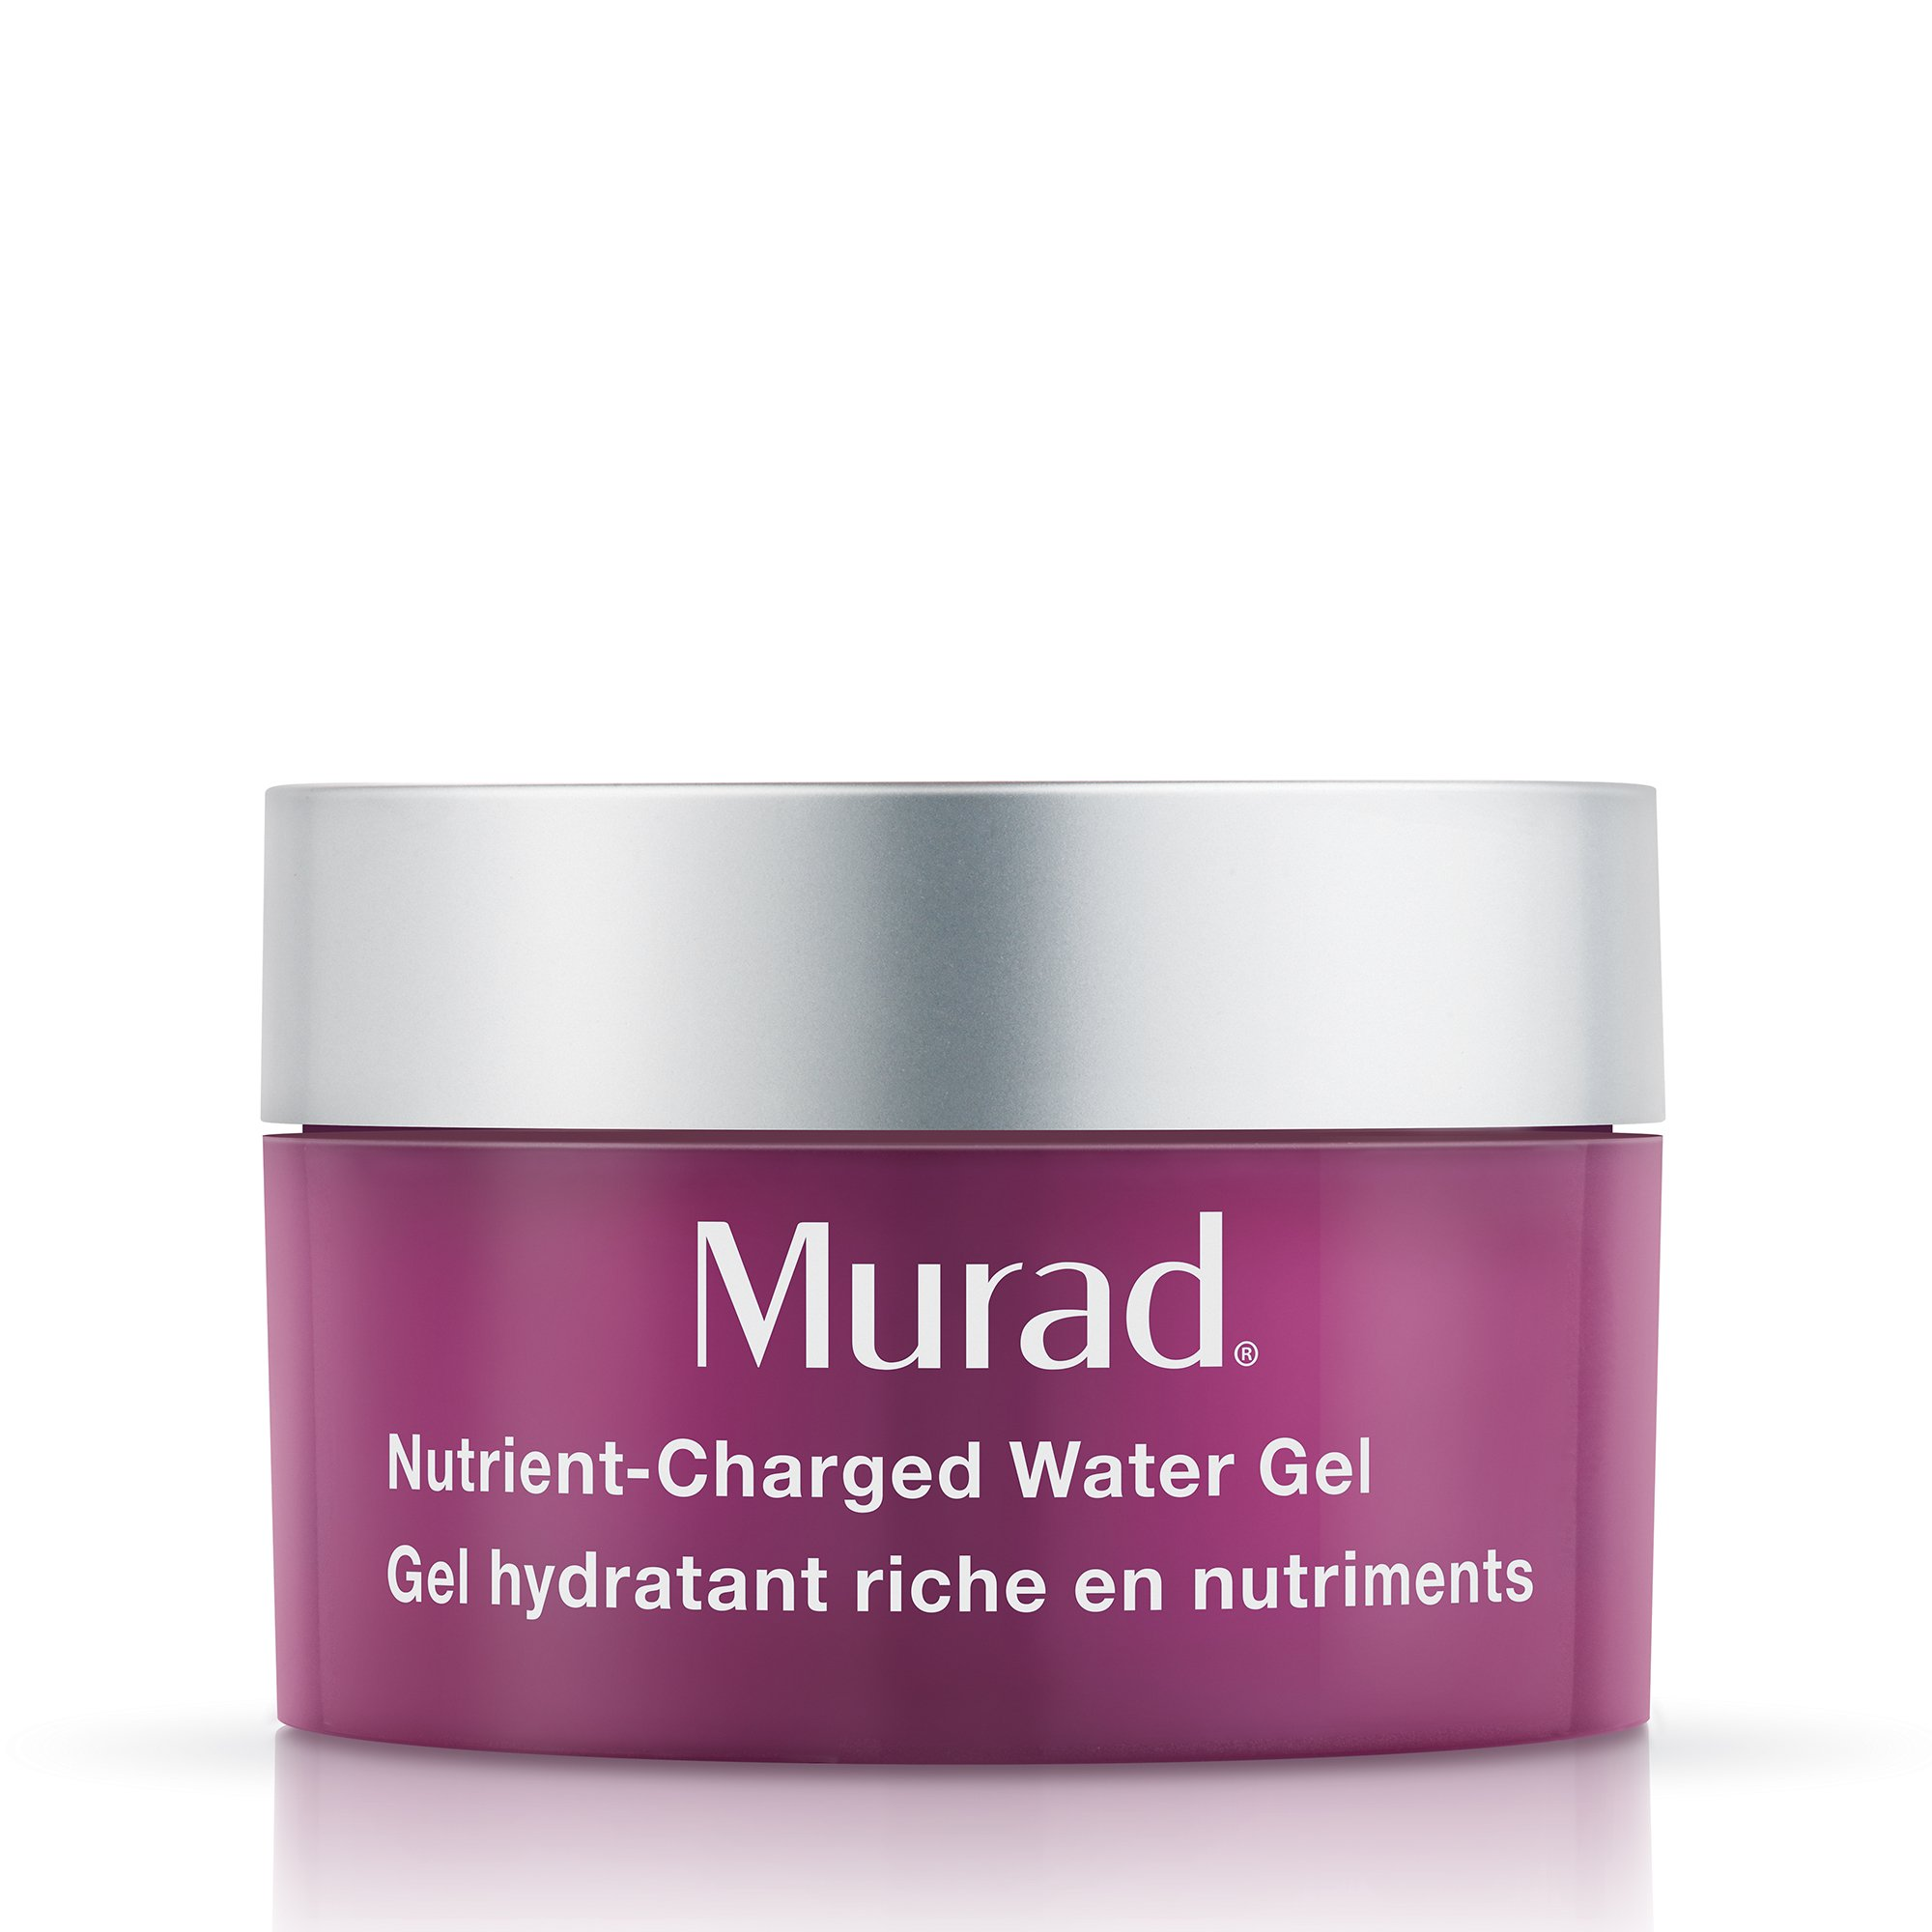 Murad Nutrient-Charged Water Gel - (1.7 fl oz), Instensely Hydrating Oil-Free Water Gel Packed with Nutrients, Revolutionary Cumulative Hydration-Release Technology for Maximum Hydration Retrention